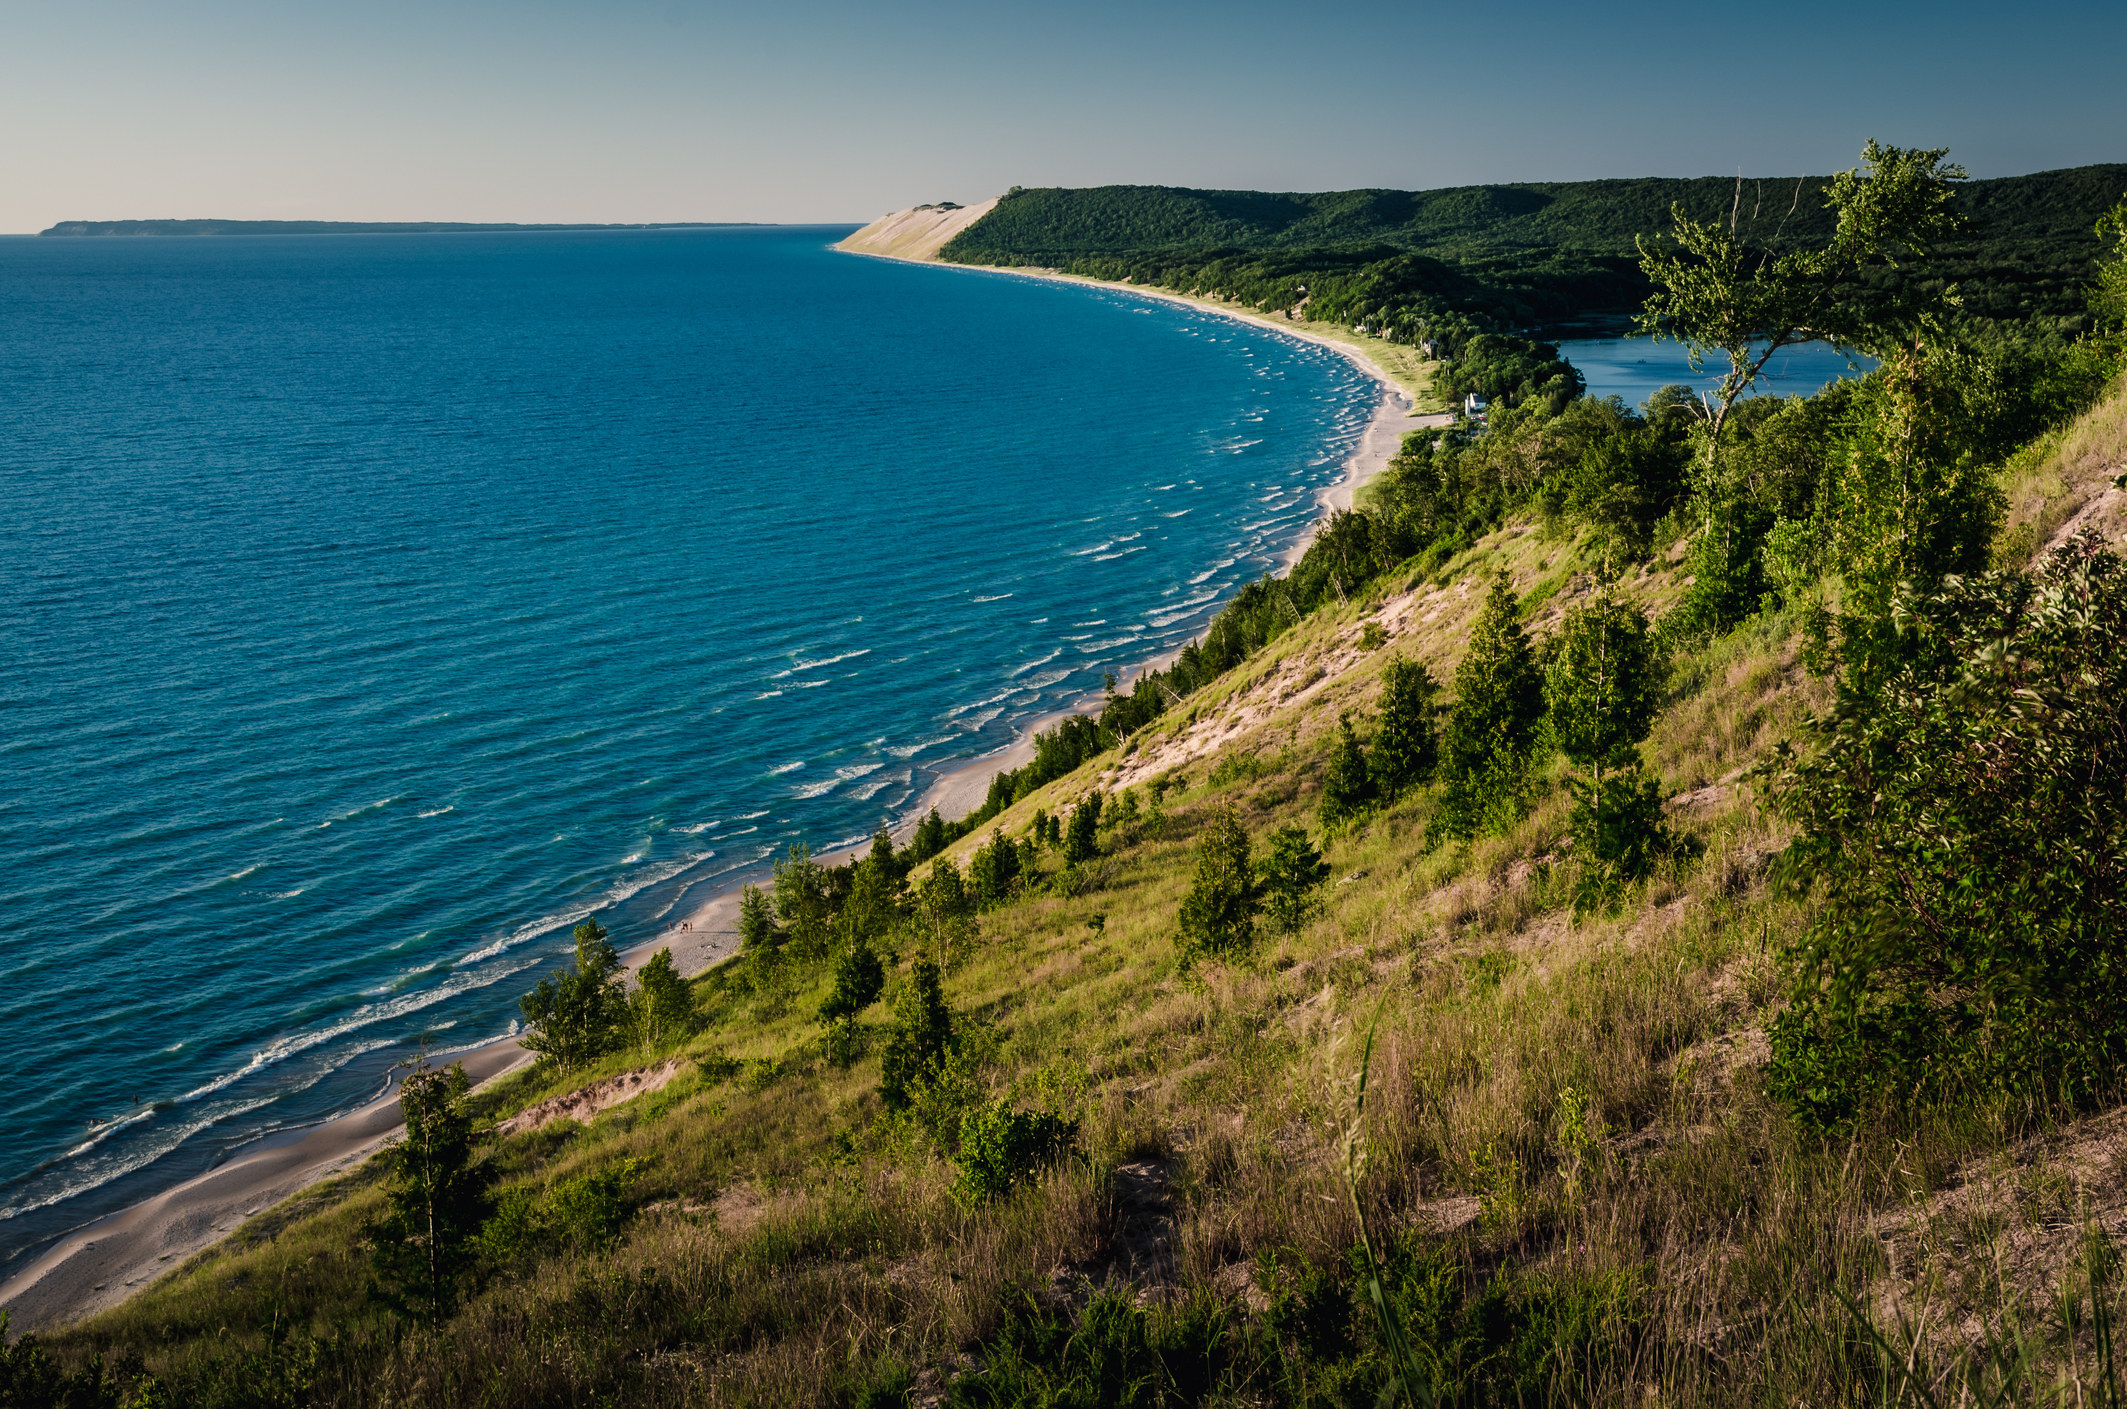 A view of Lake Michigan from Sleeping Bear Dunes National Park.